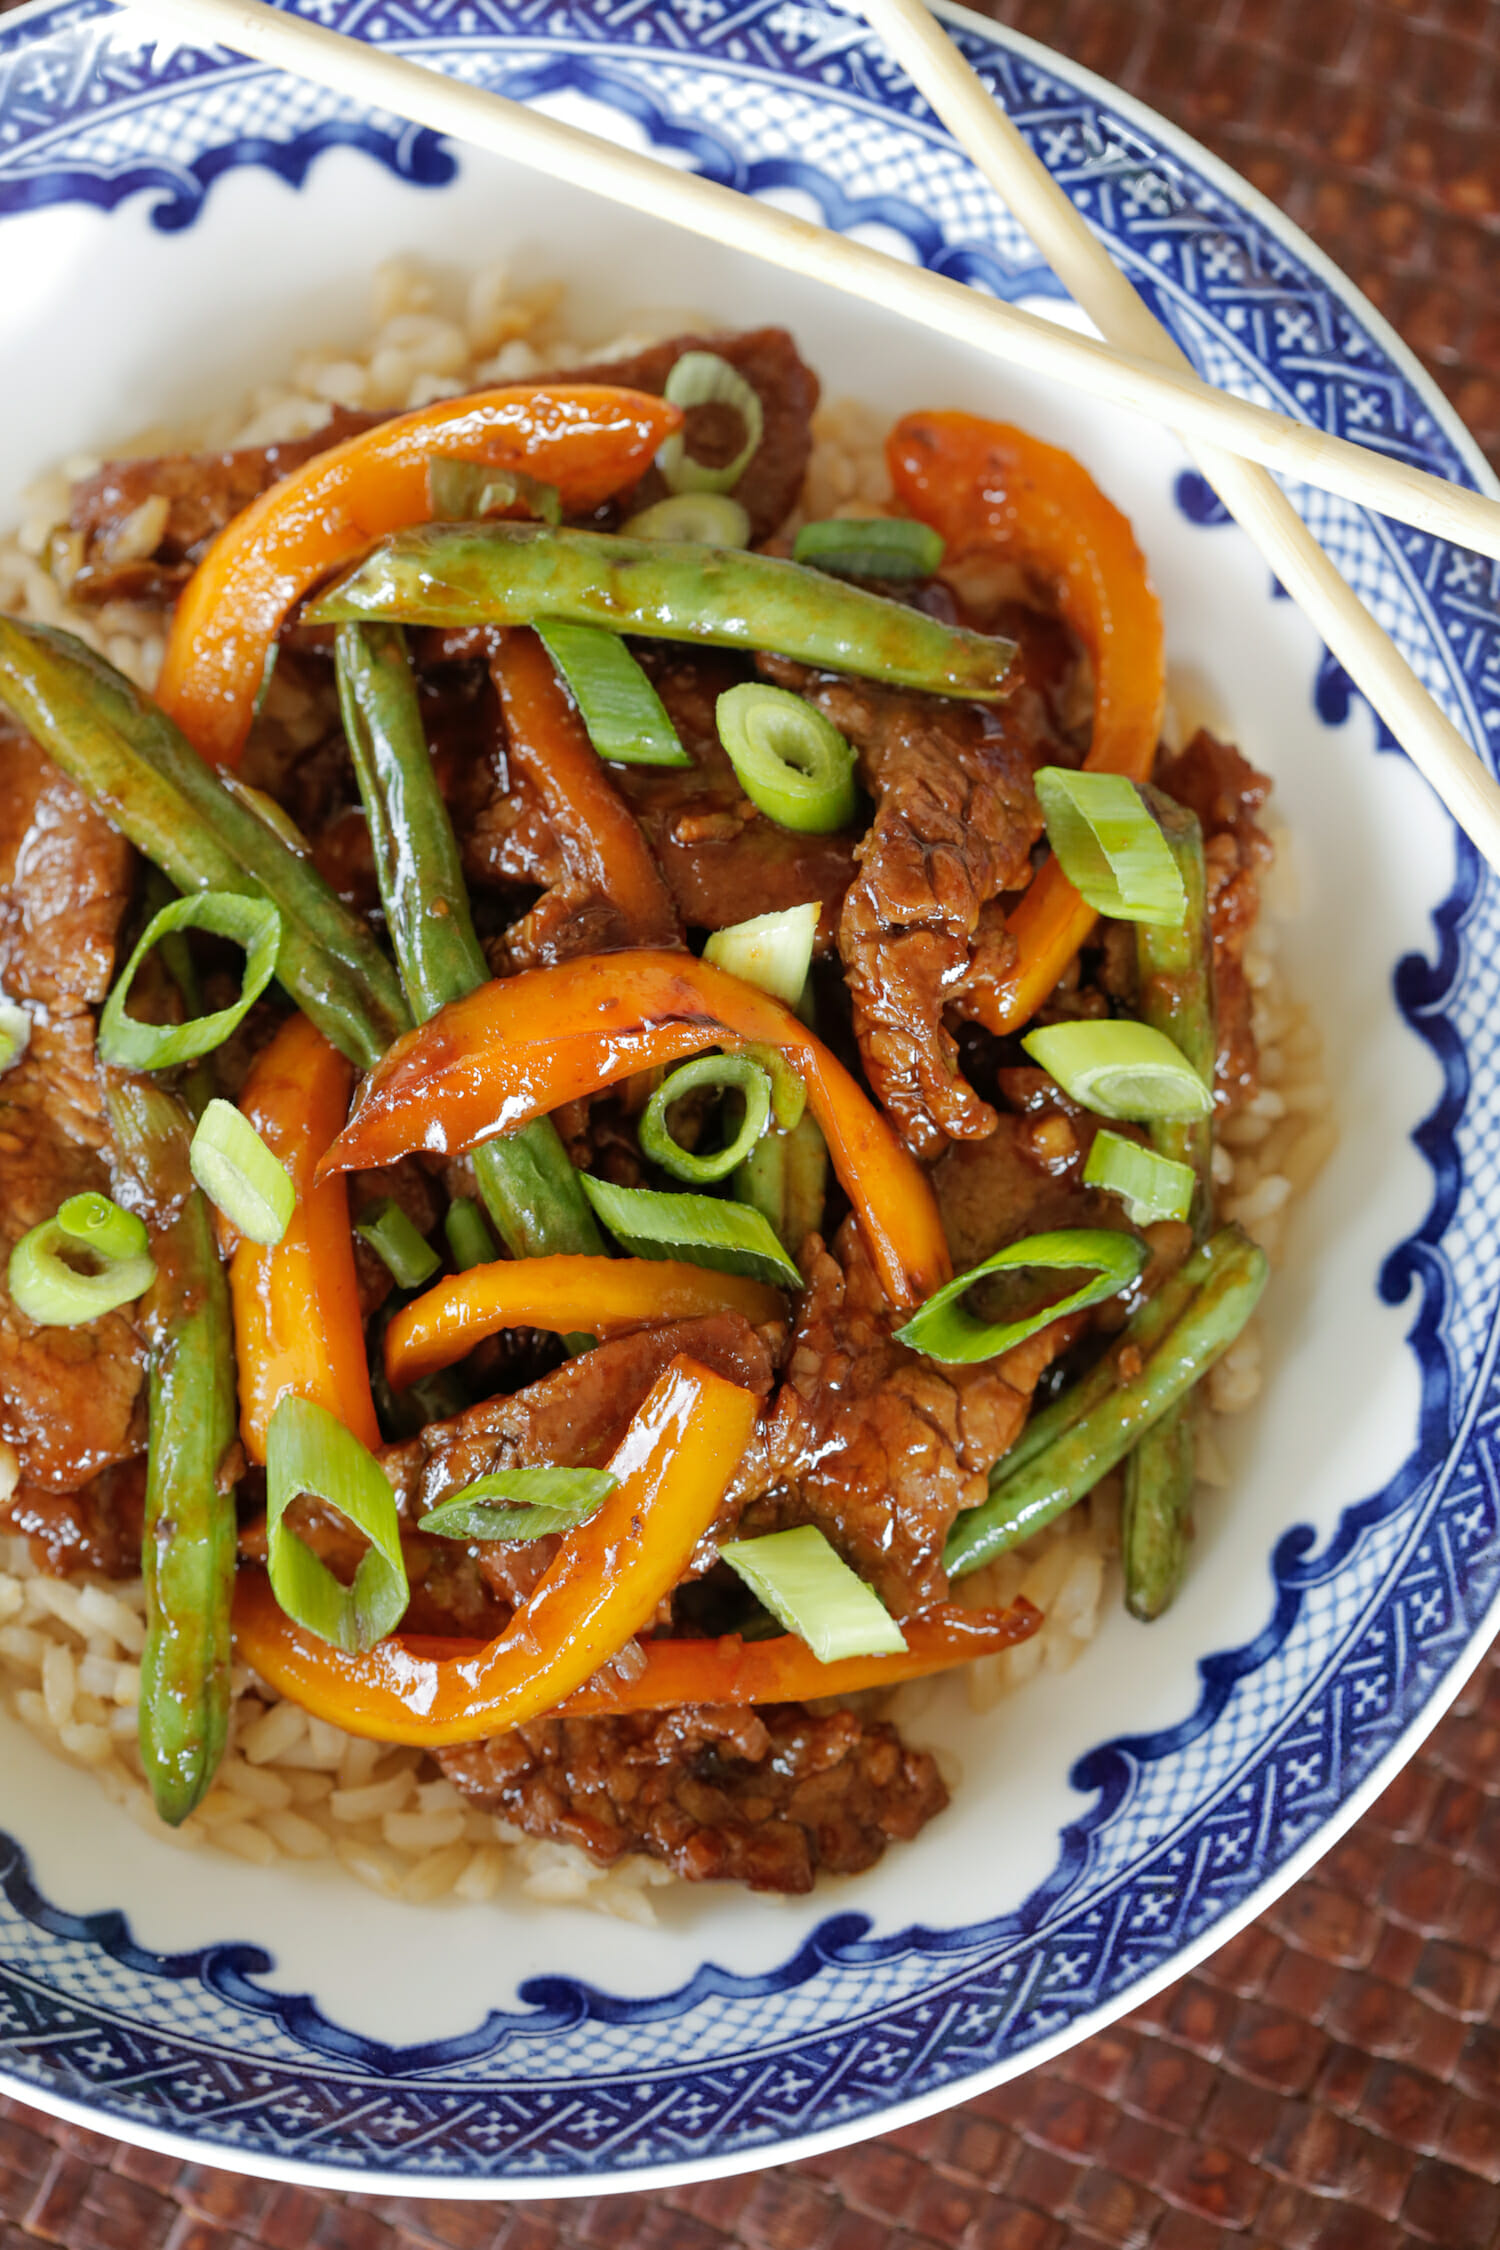 beef and green bean stir fry over rice in a blue bowl with chopsticks